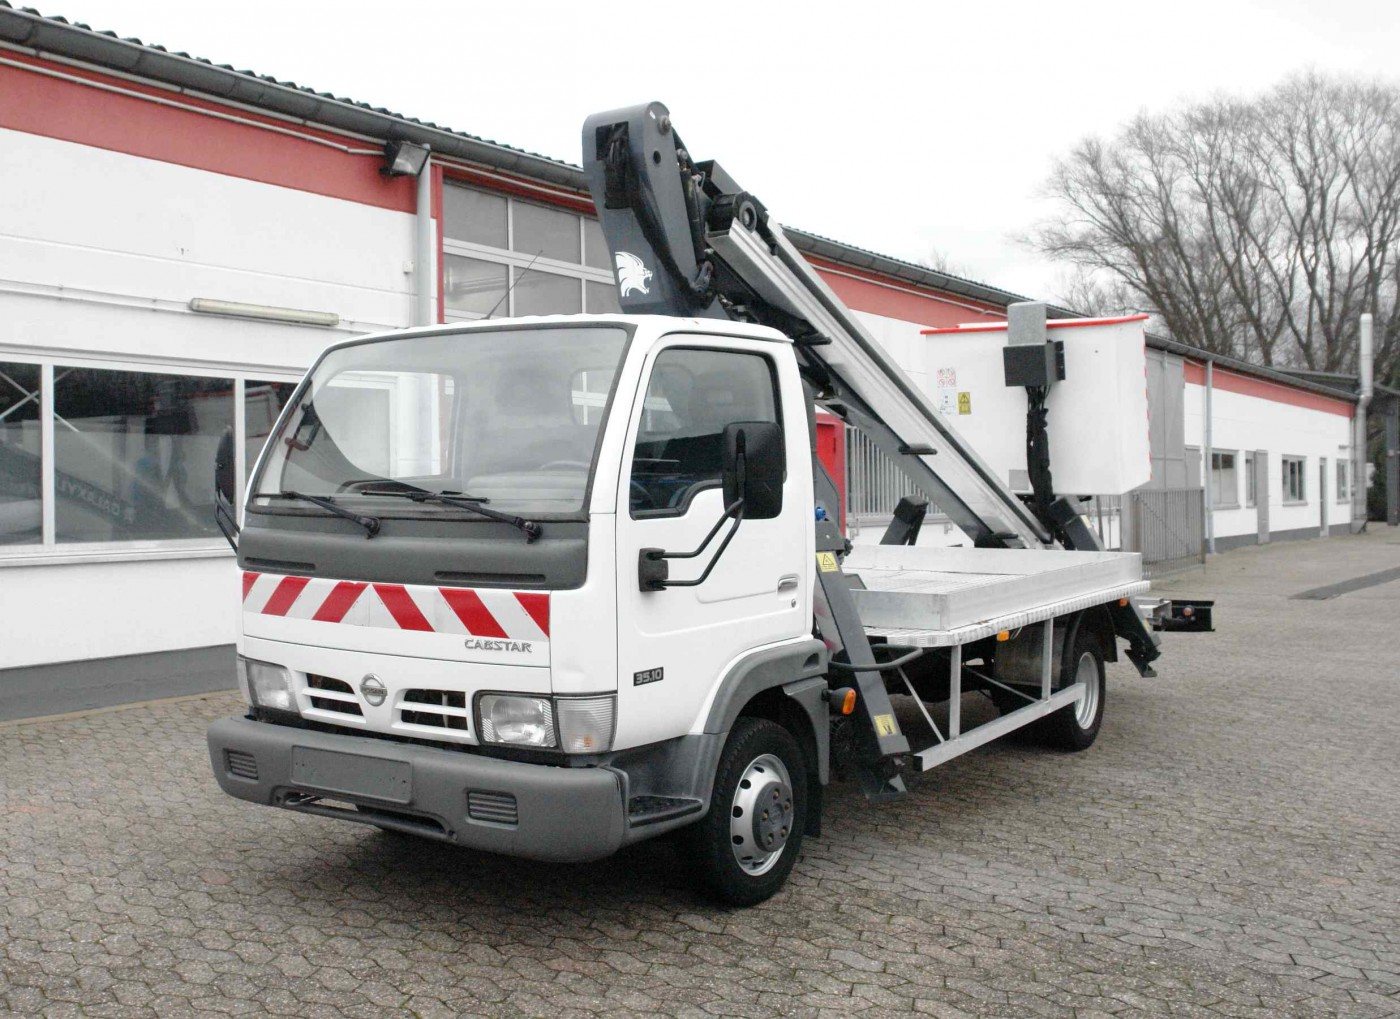 Nissan - Cabstar 35.10 Arbetsplattform Lionlift Galaxy Lift GT 18-12